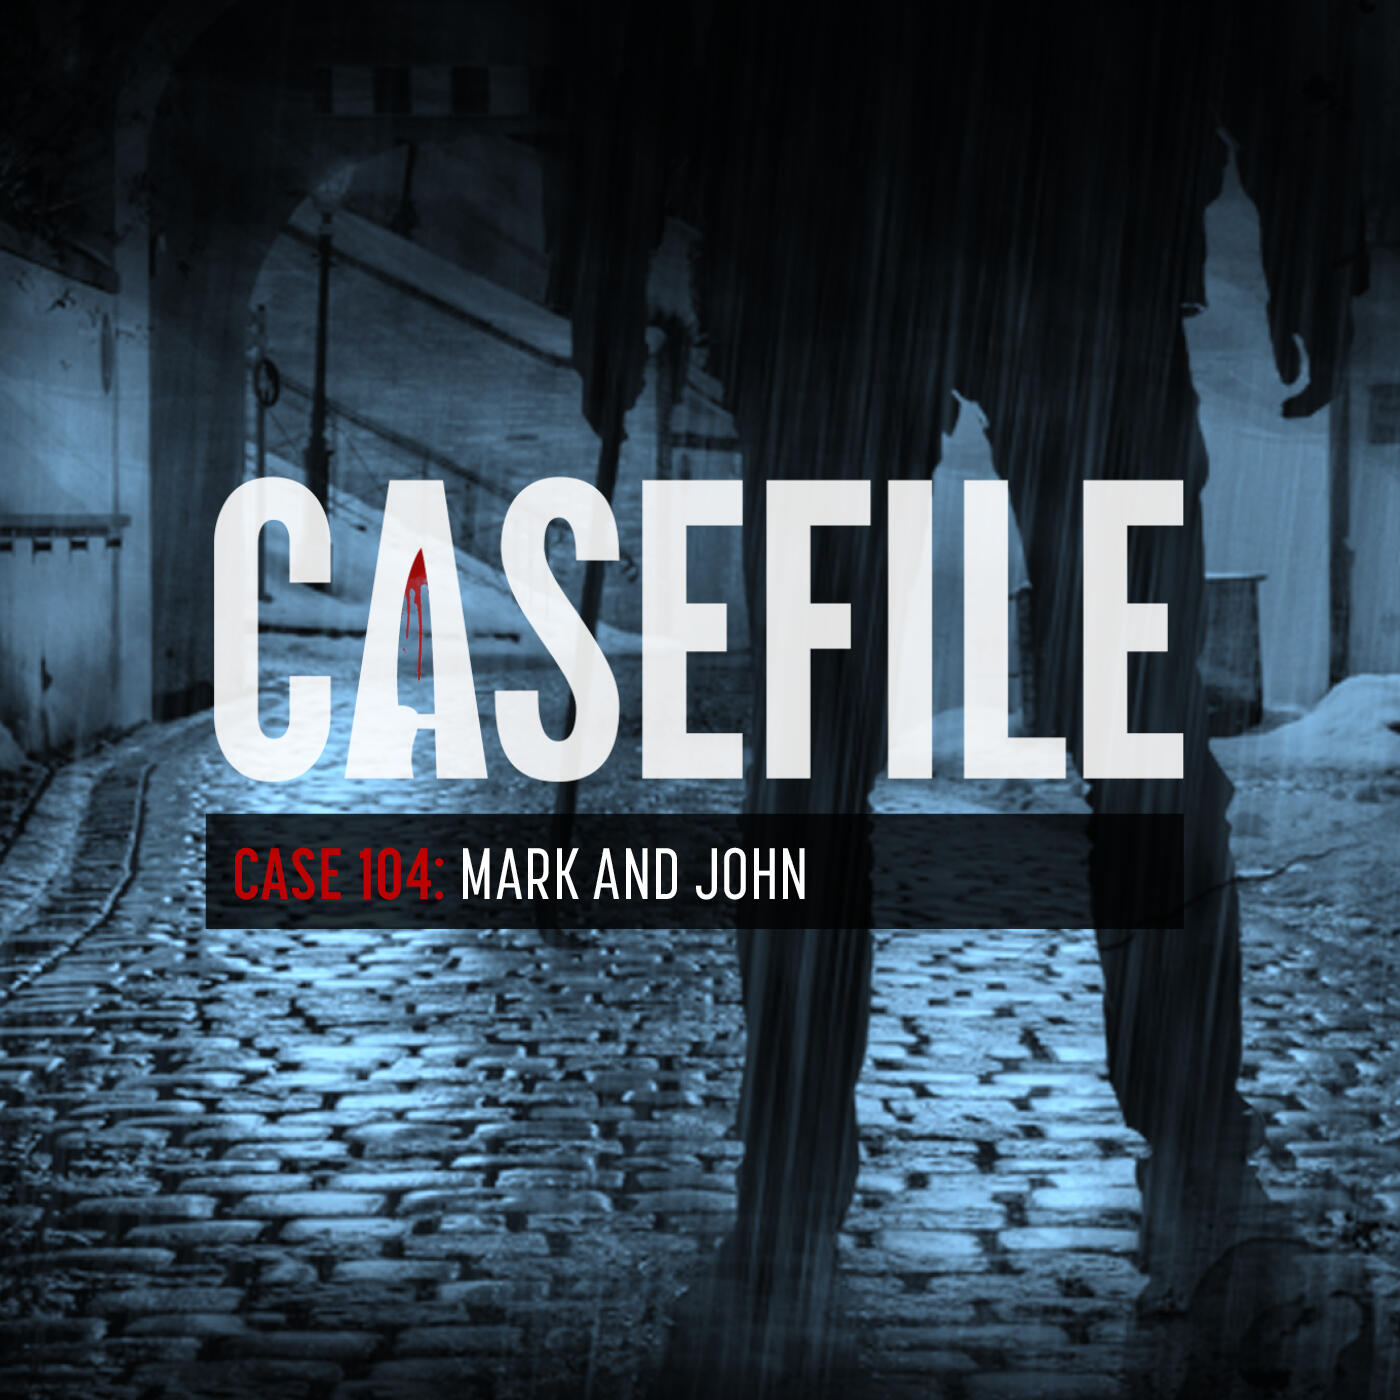 Case 104: Mark and John